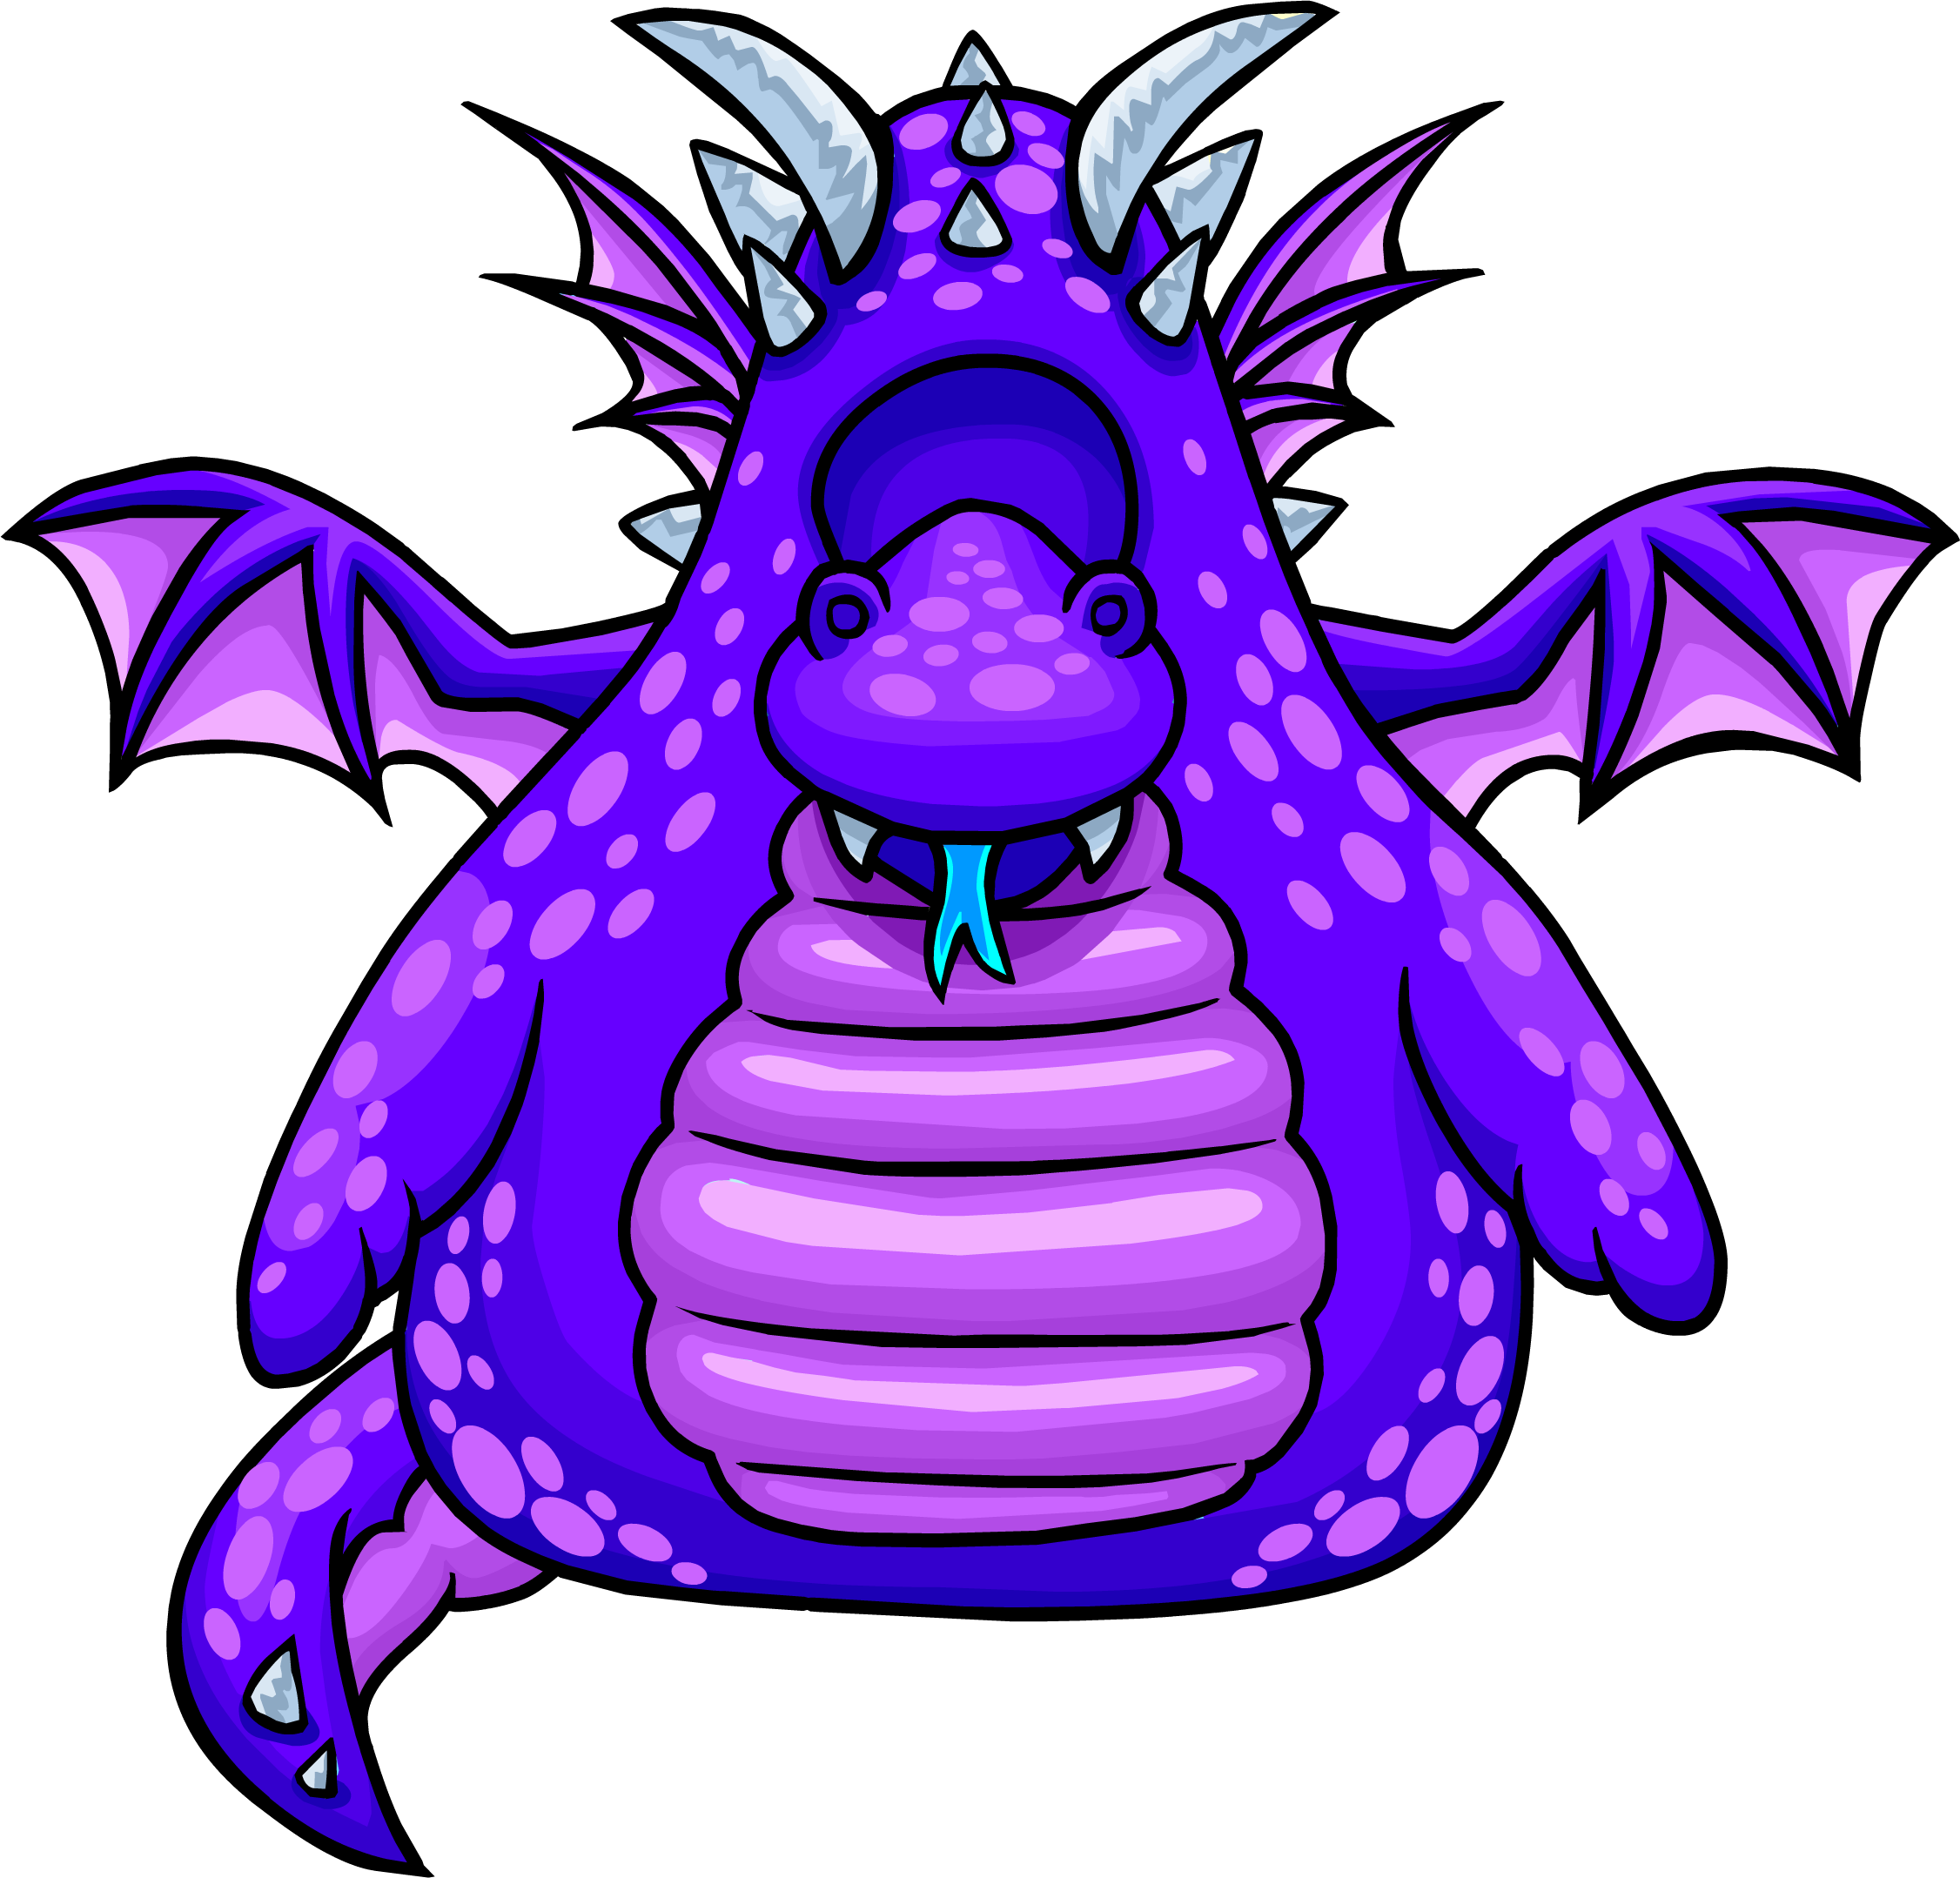 Planets clipart purple. Dragon costume club penguin